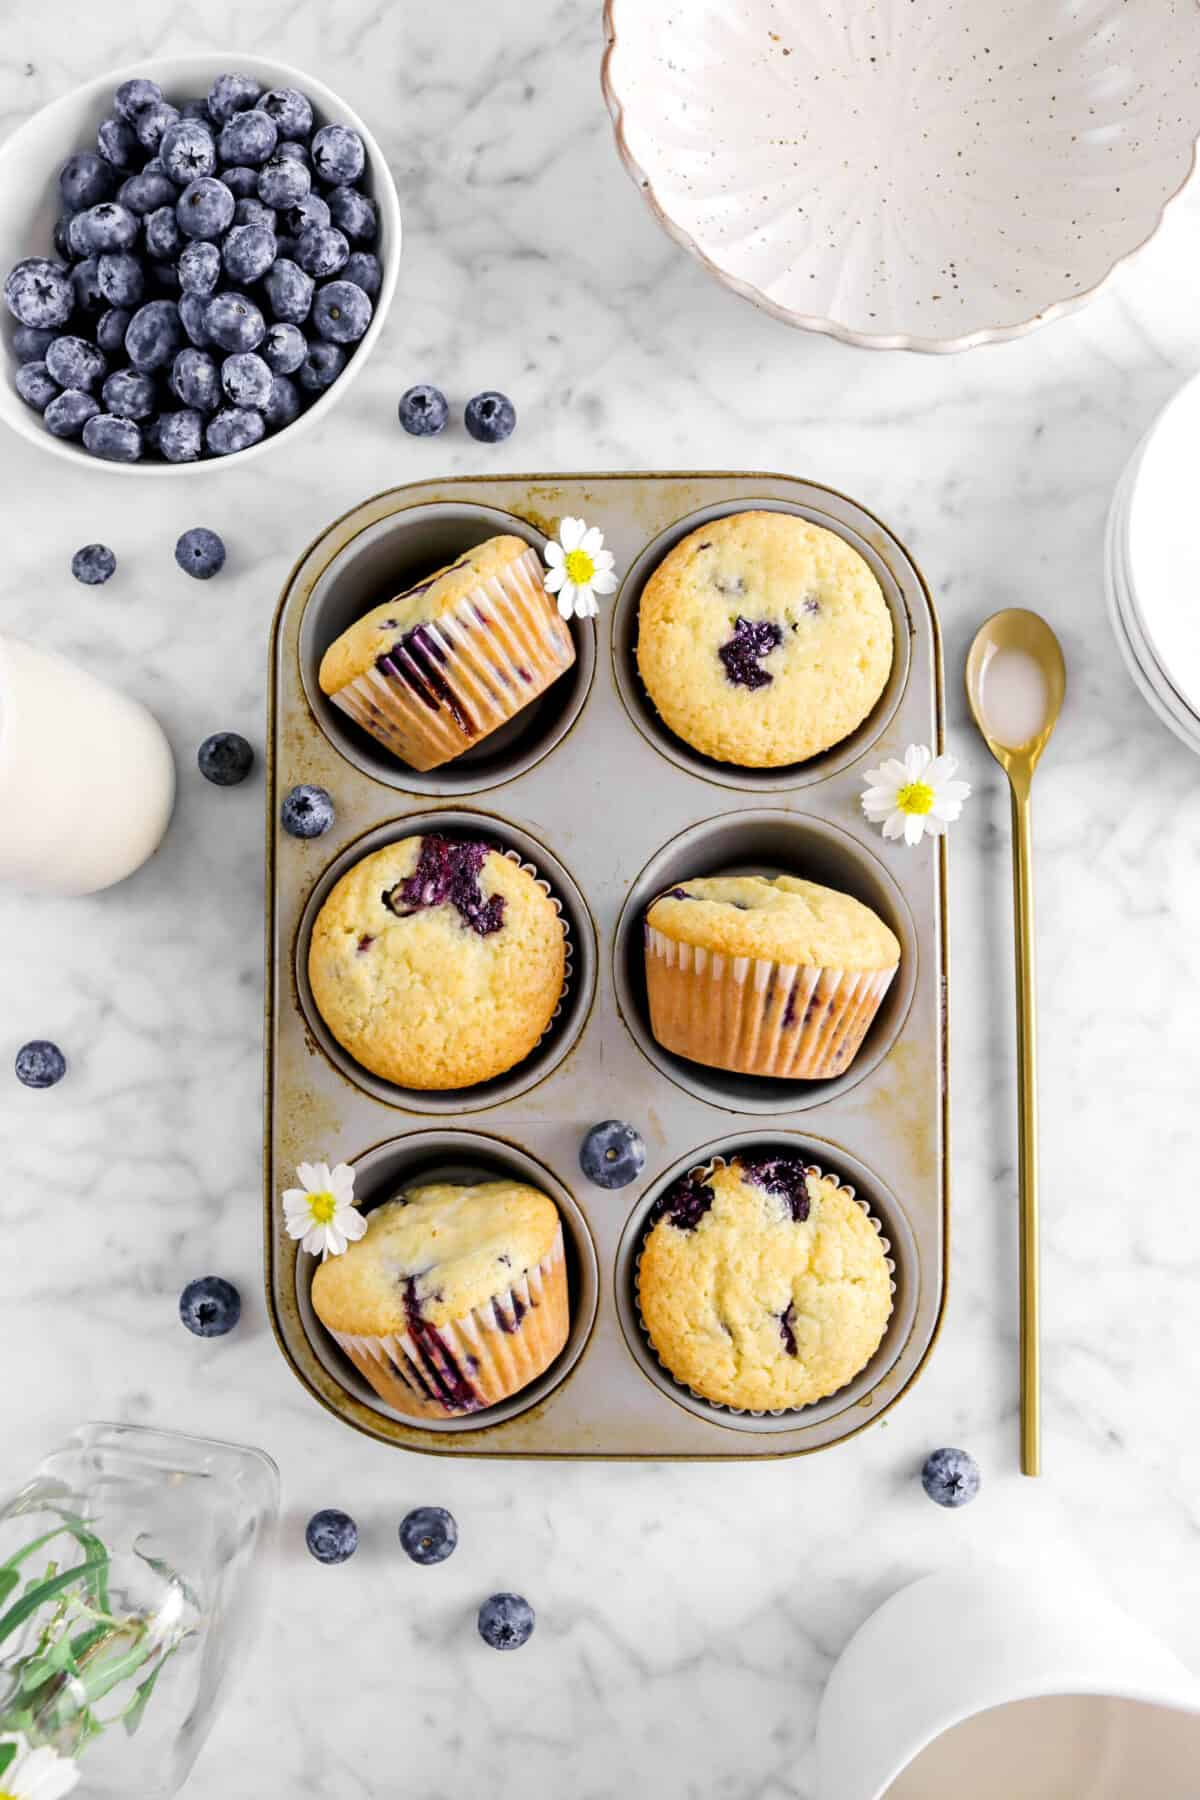 overhead shot of blueberry muffins in small cupcake pan with gold spoon, blueberries, flowers, and bowls around